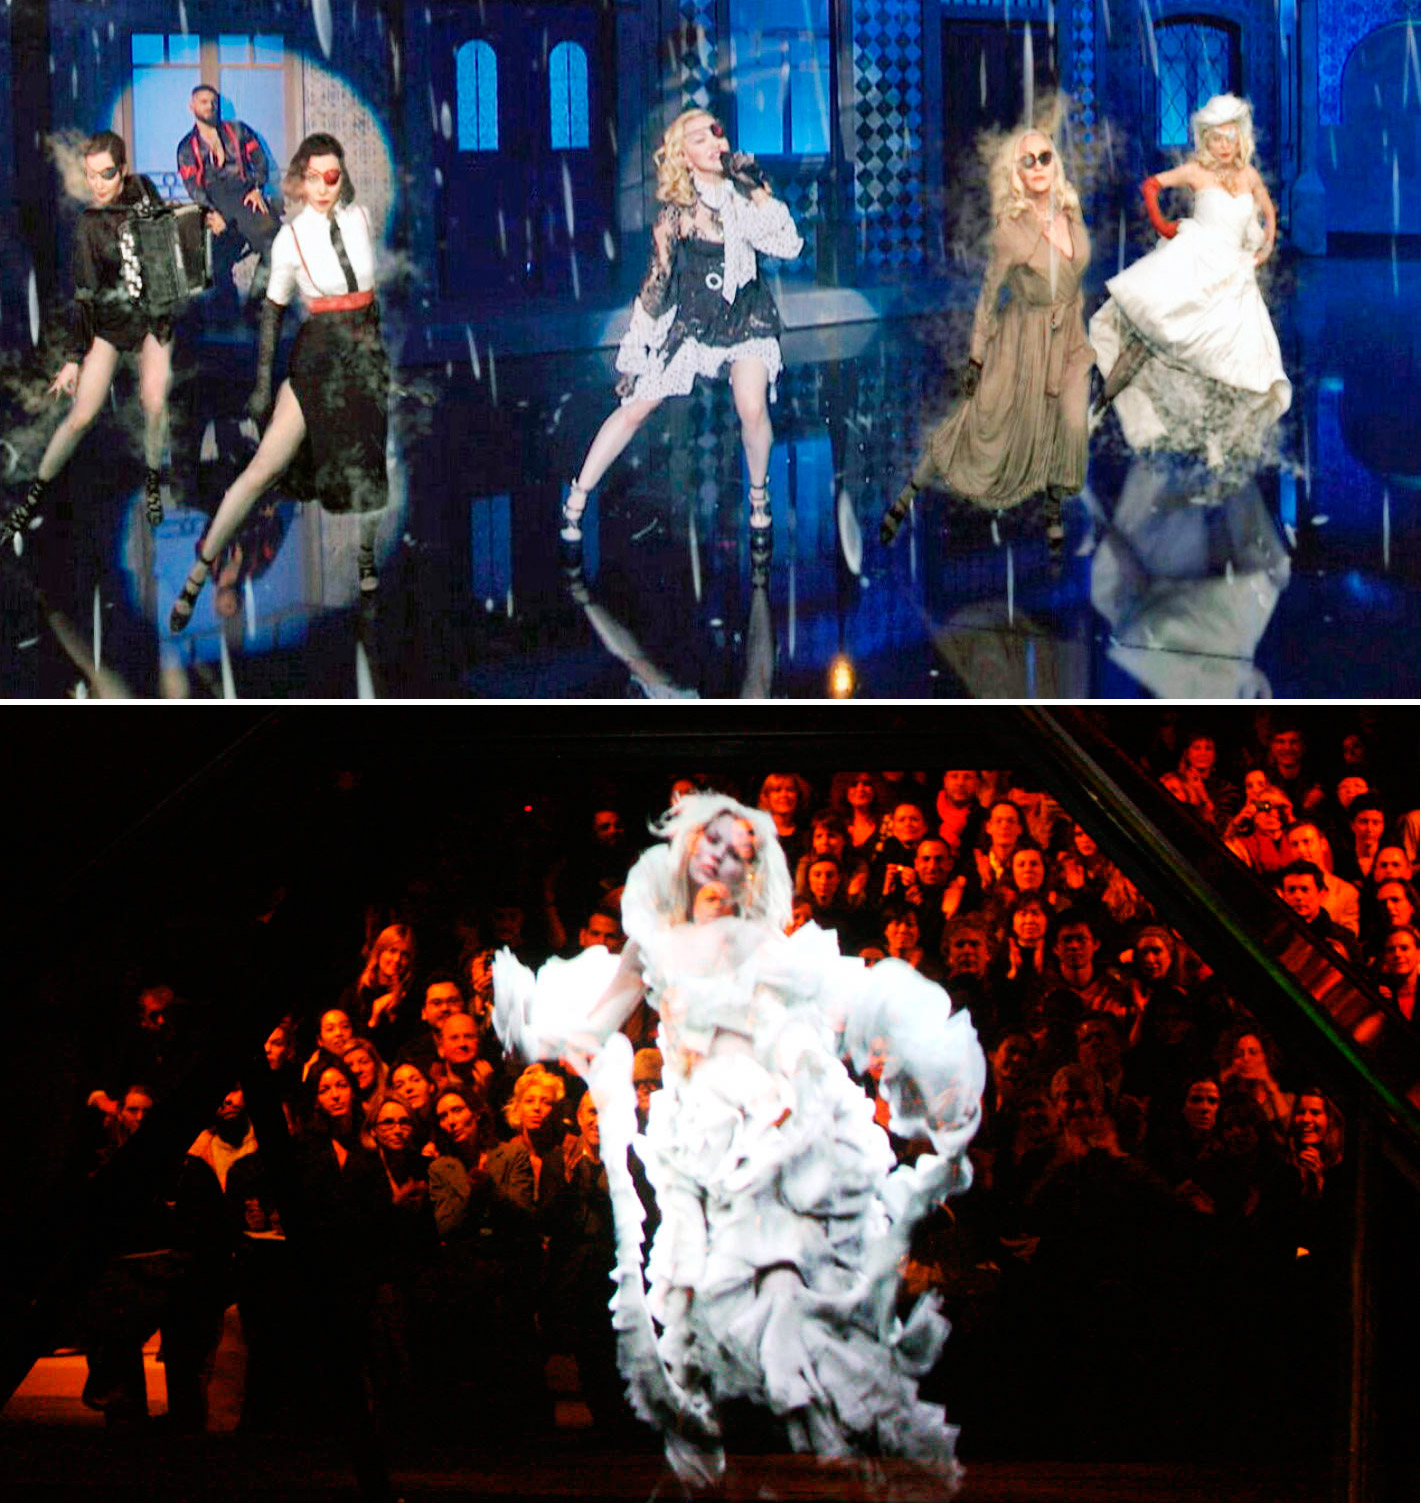 En haut, Madonna, aux Billboard Music Awards, le 1er mai 2019, à Las Vega et en bas, Kate Moss, le 3 mars 2006, en final de la collection The Widows of Culloden d'Alexander McQueen, à Paris